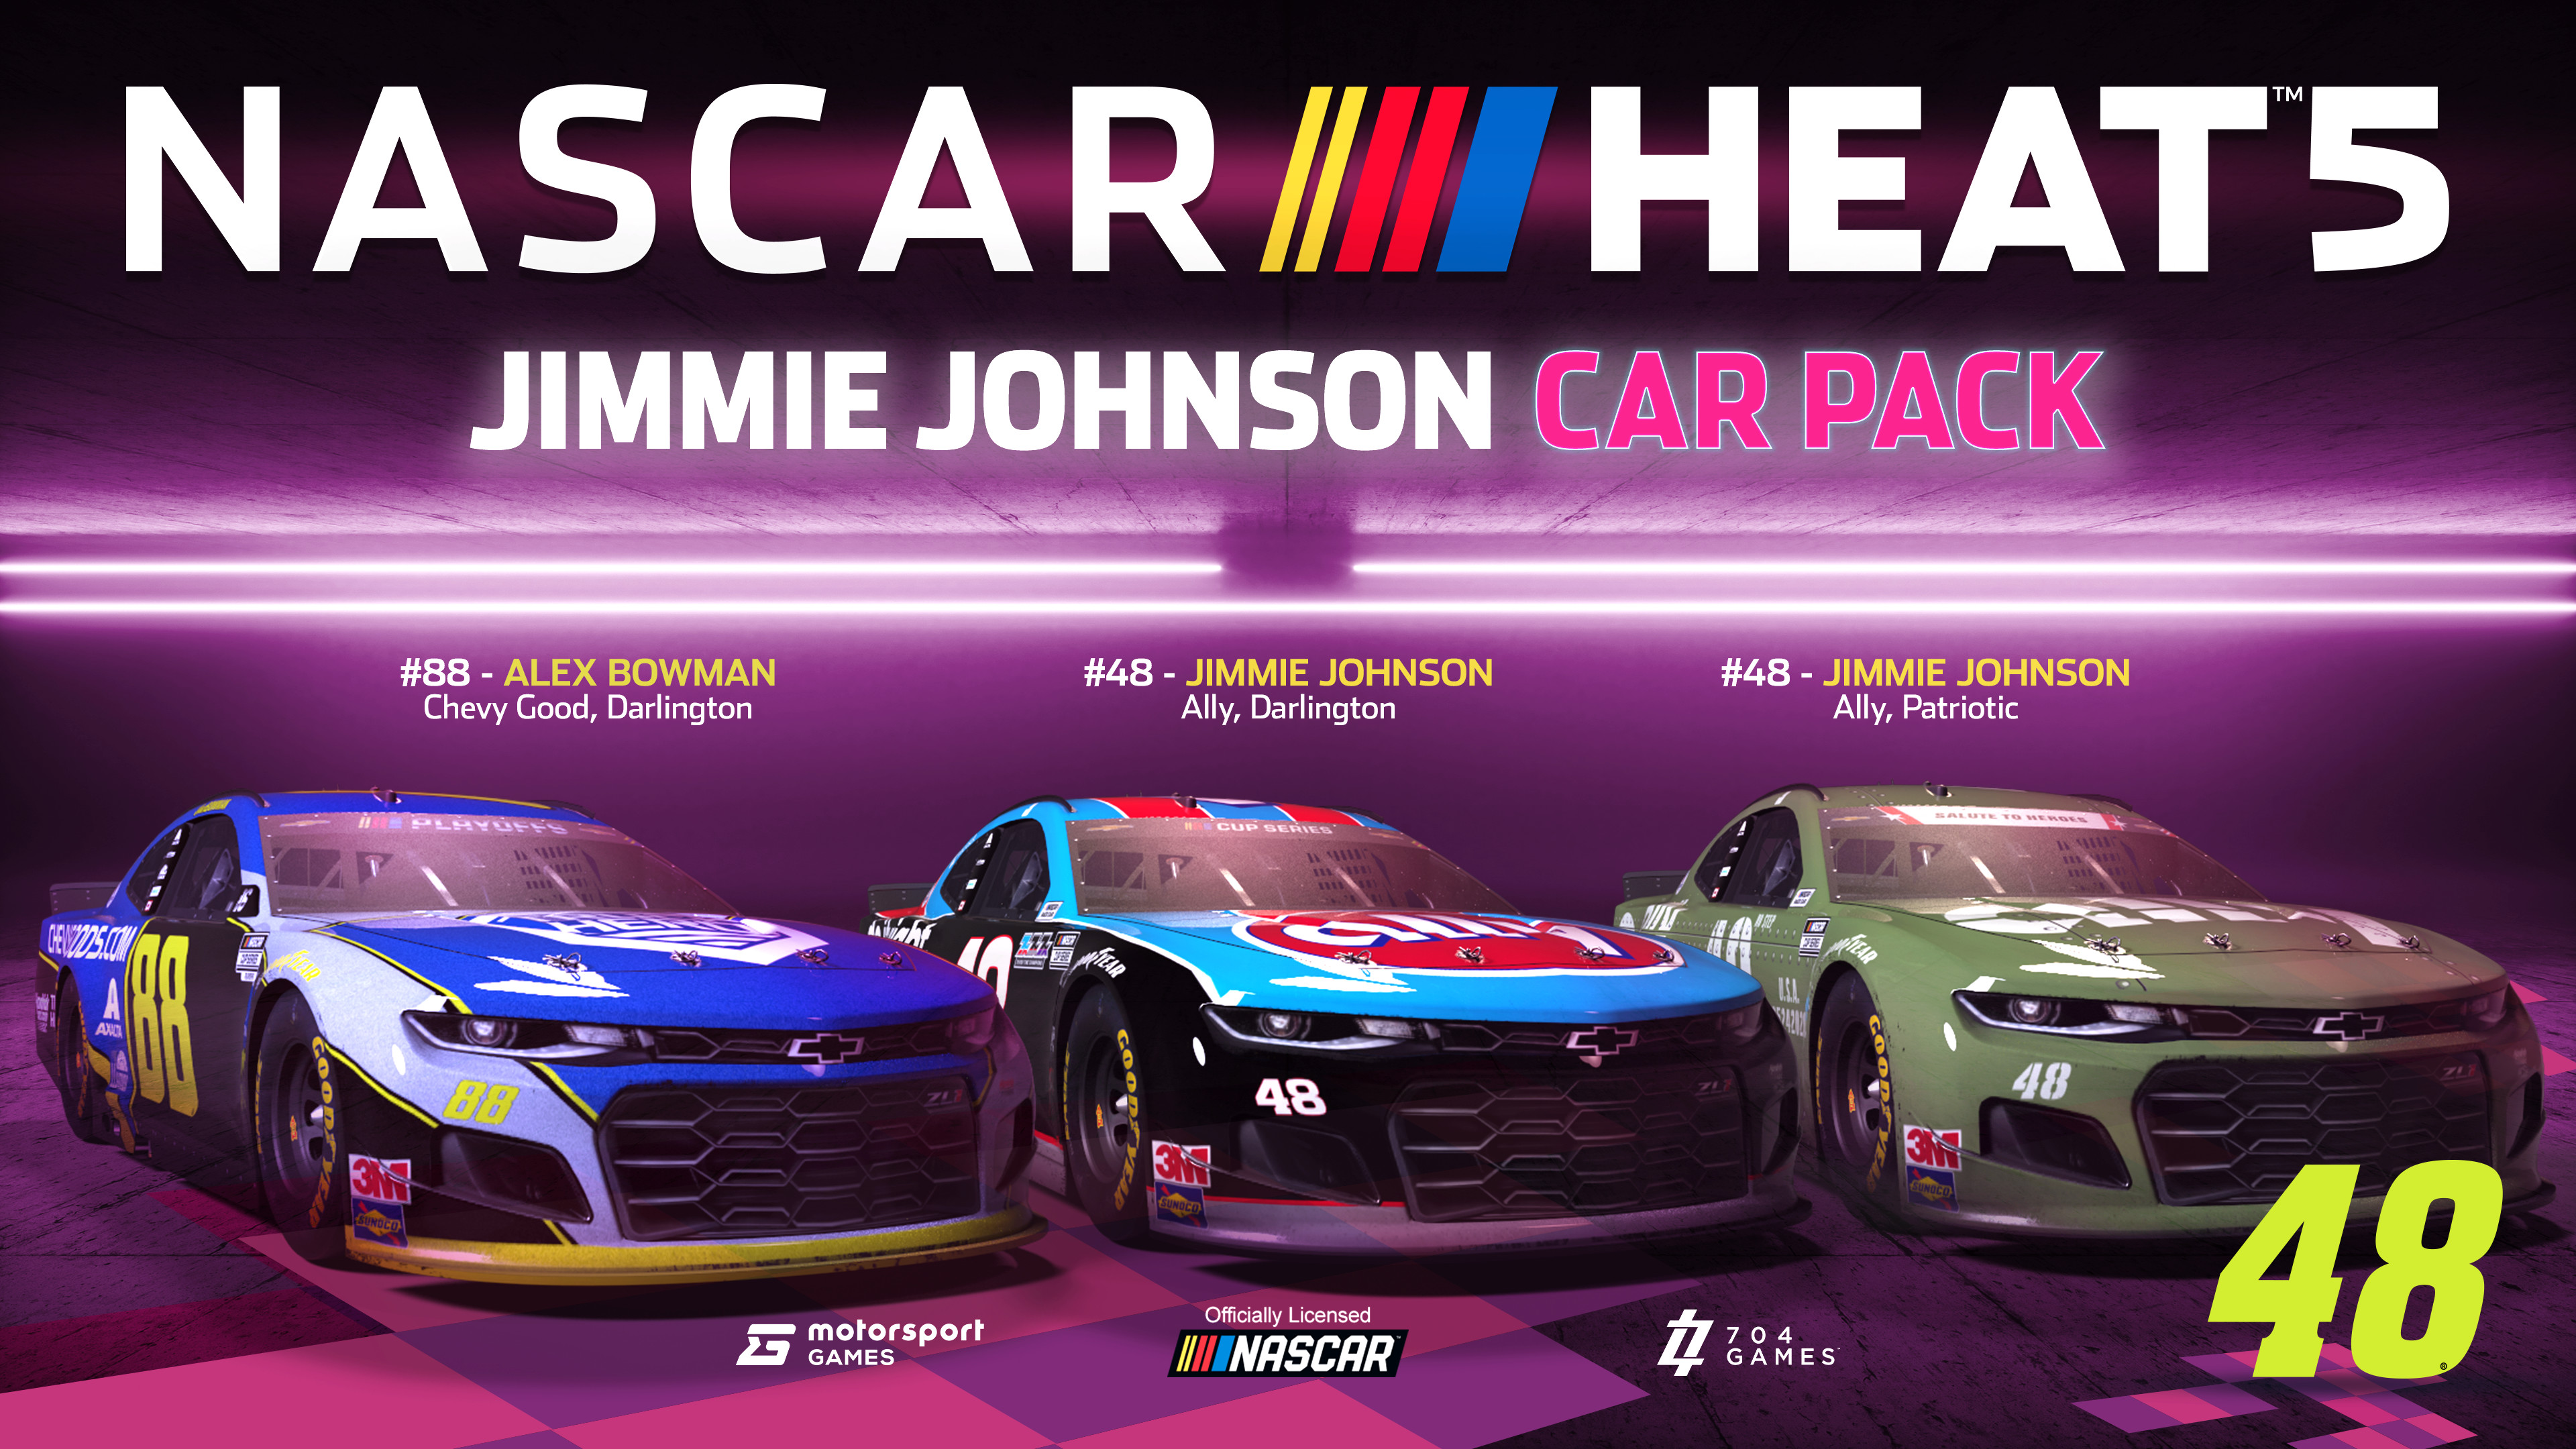 NASCAR Heat 5 - Jimmie Johnson Pack screenshot